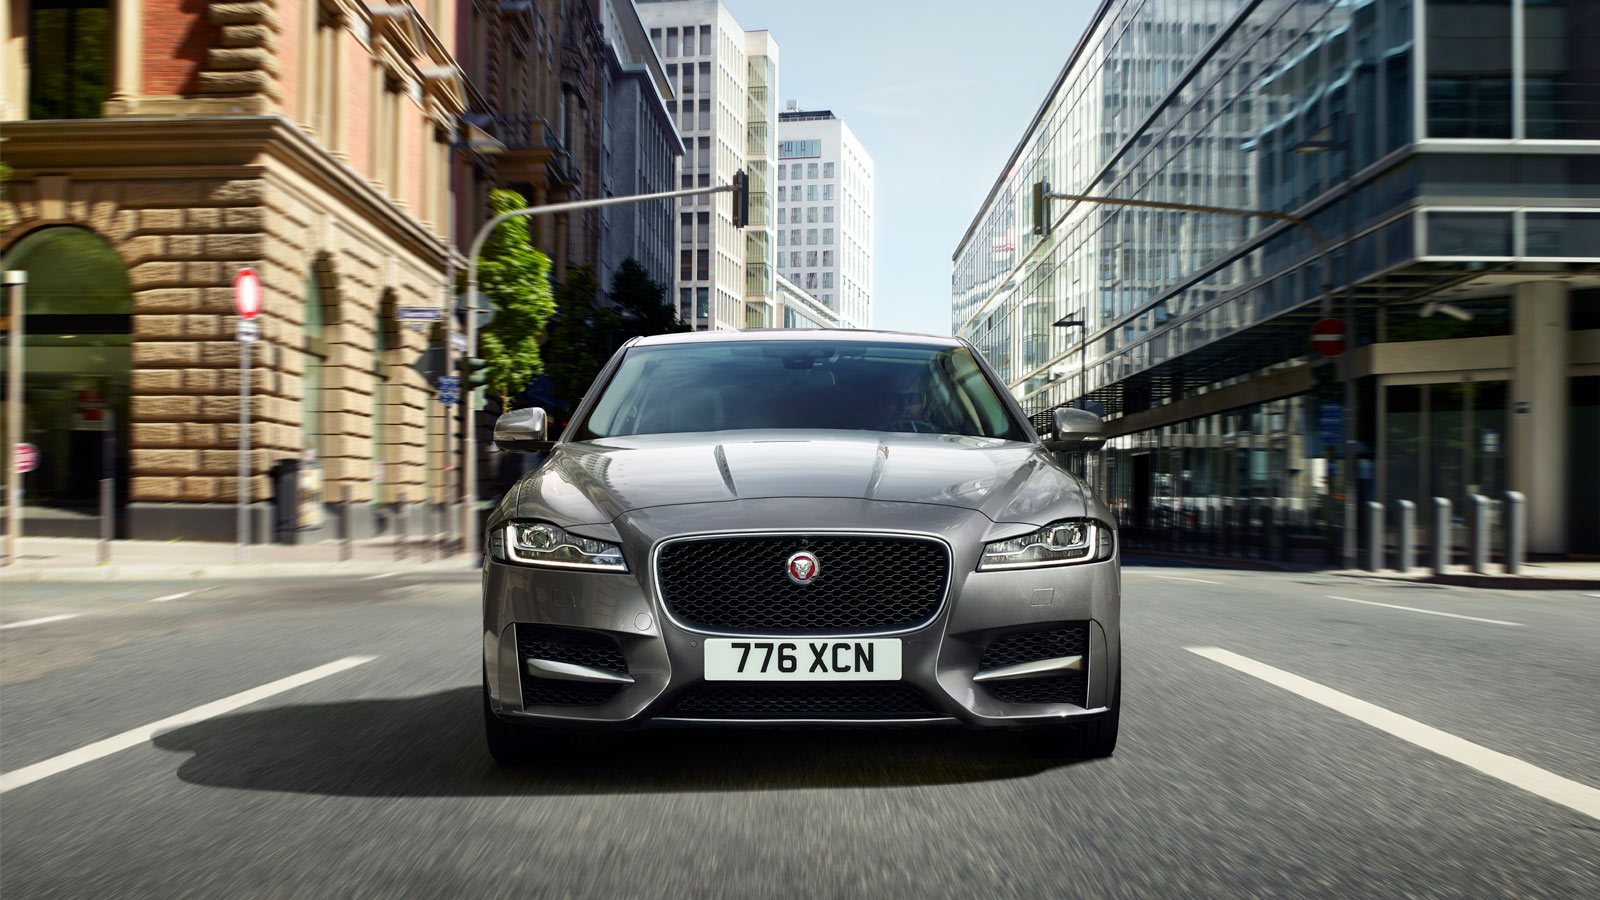 Jaguar XF driven on road.